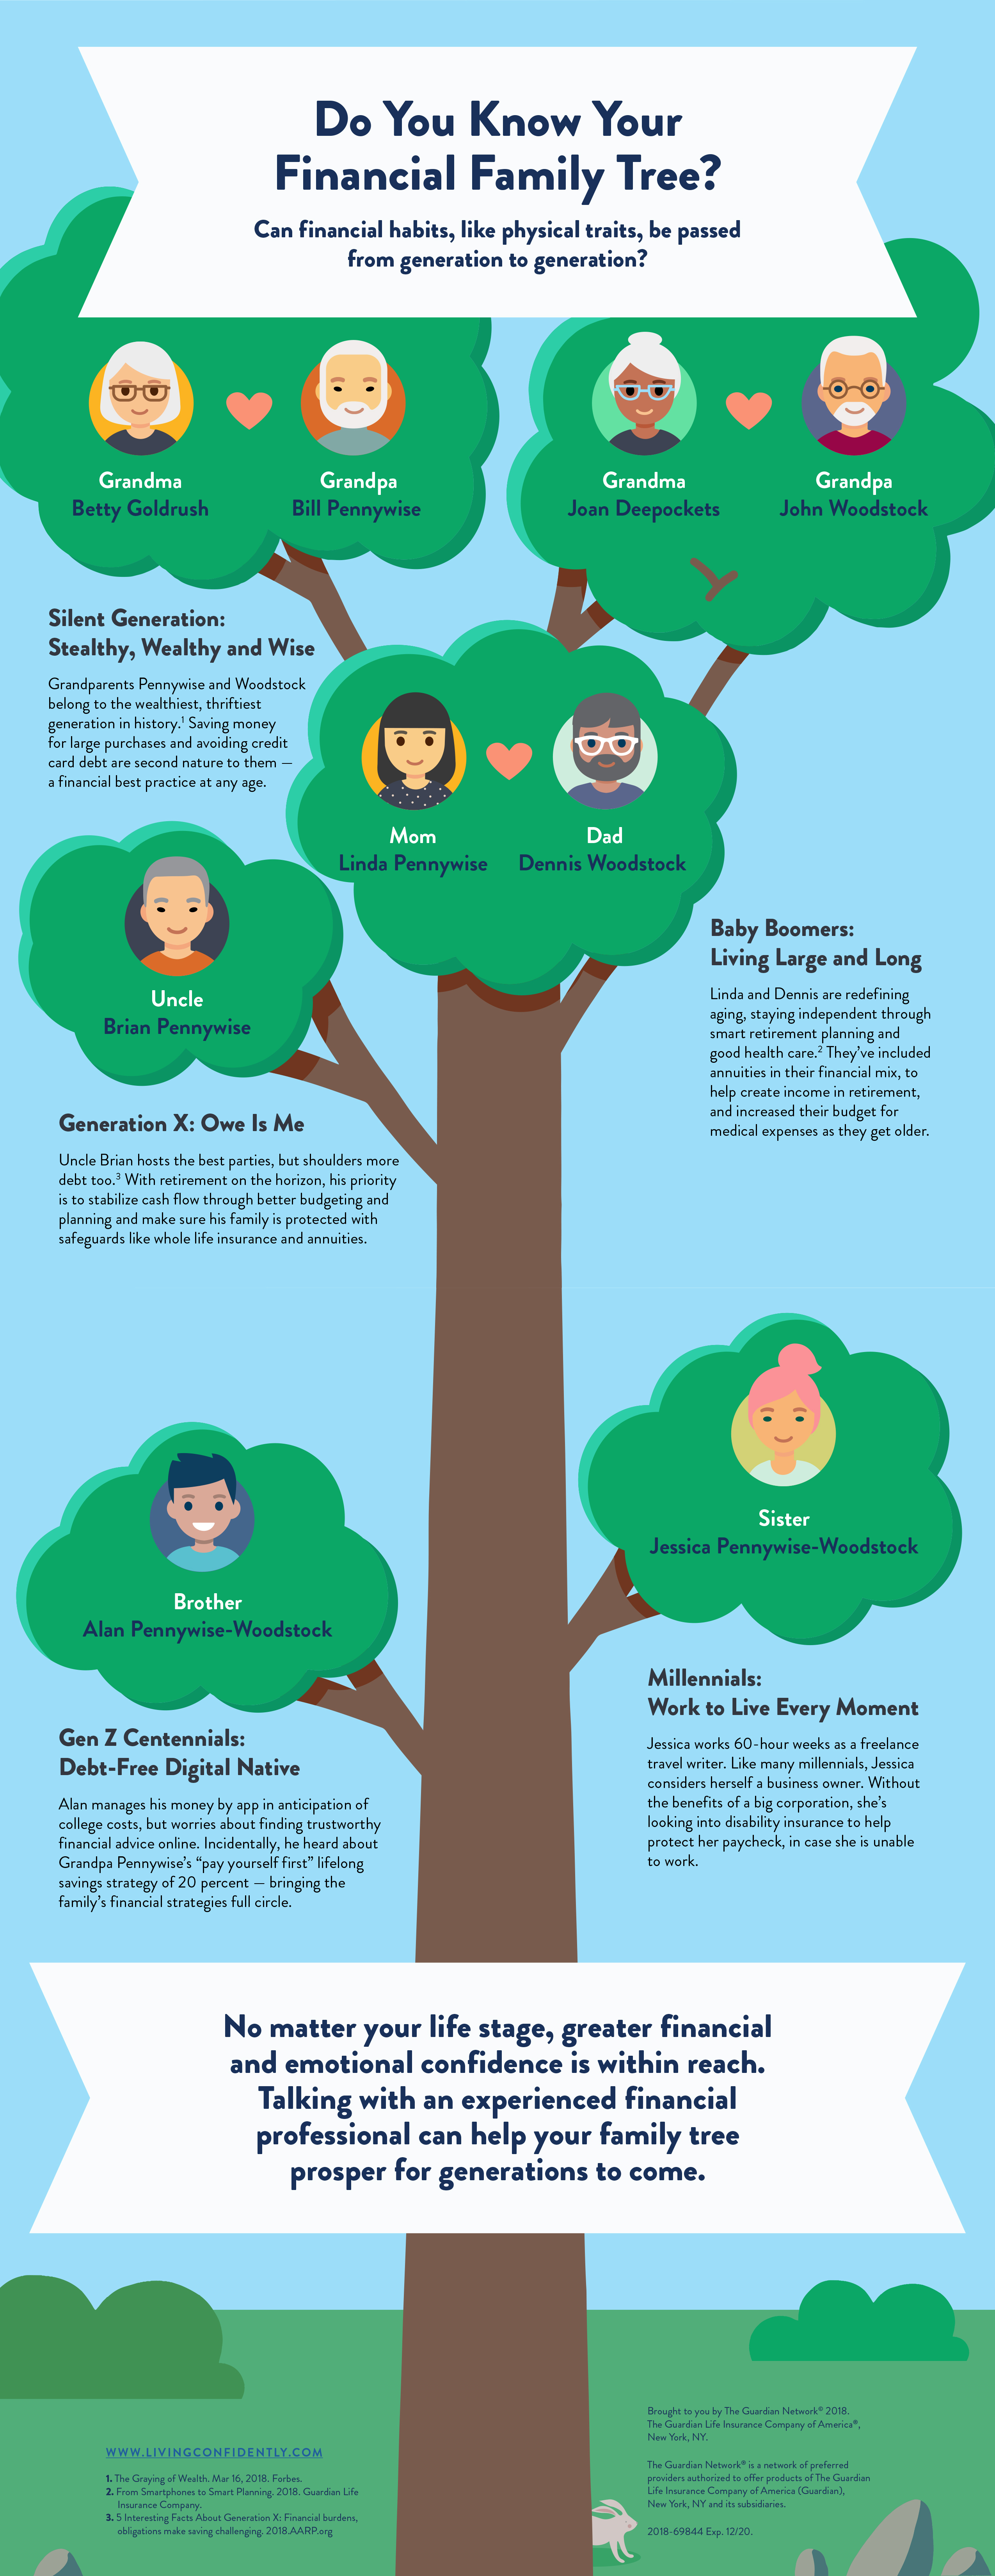 Your Financial Family Tree   Horizon Planning Group